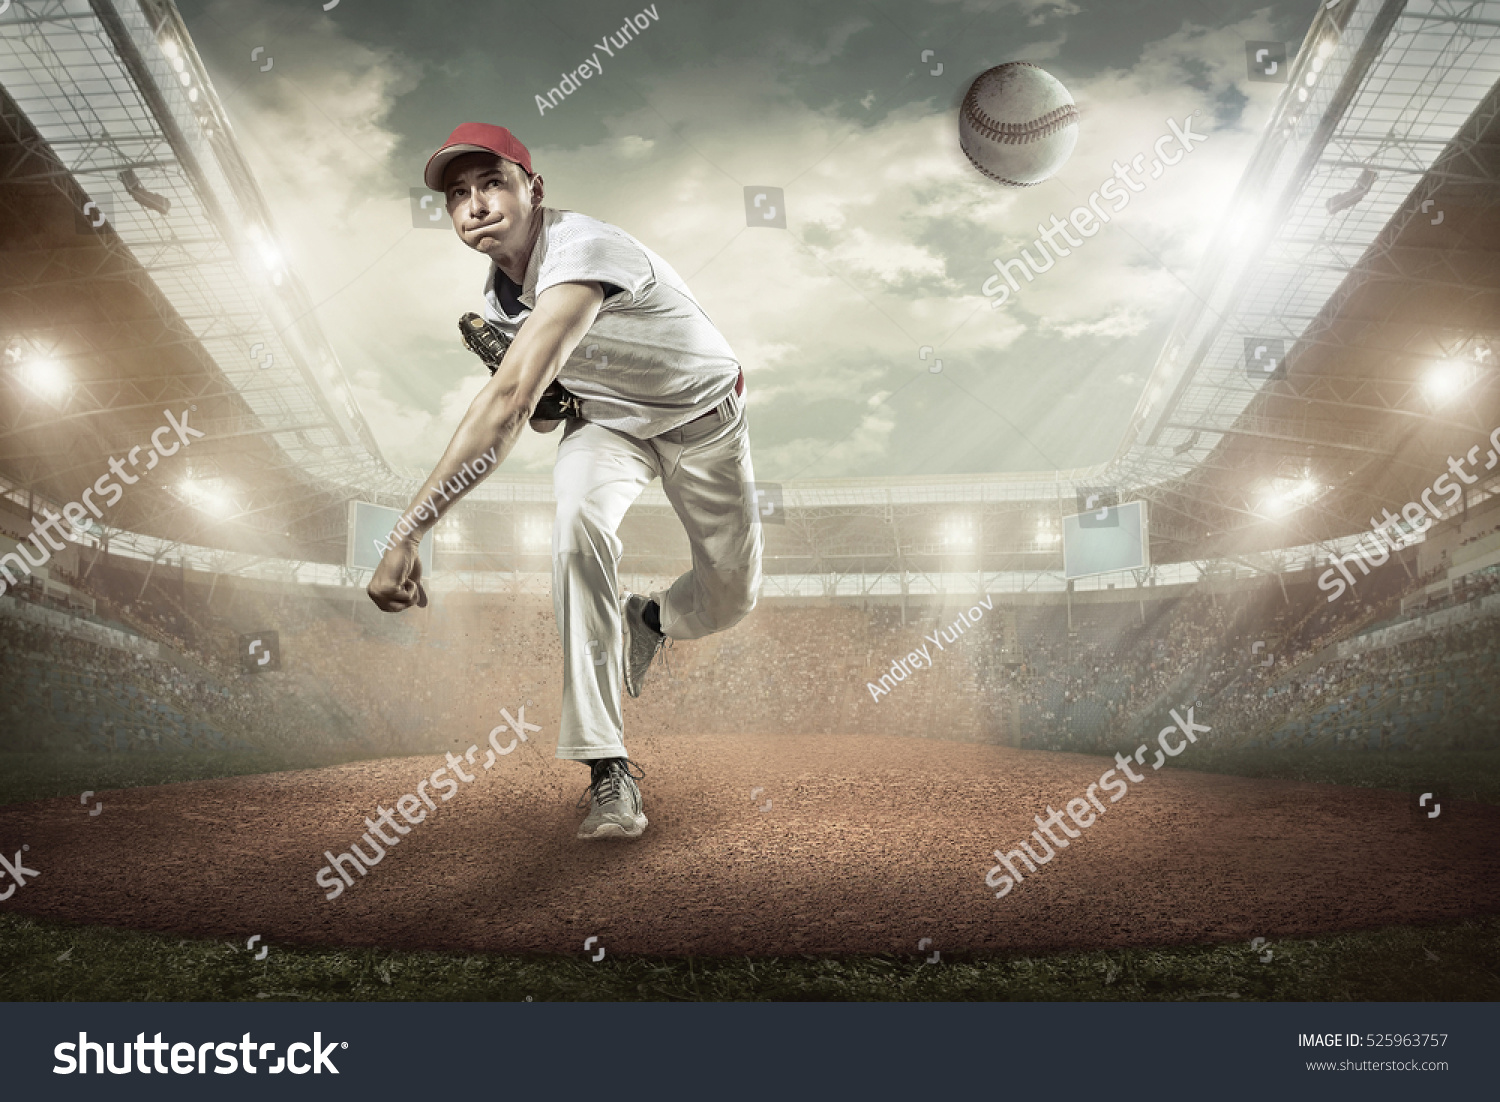 Baseball players in action on the stadium. #525963757